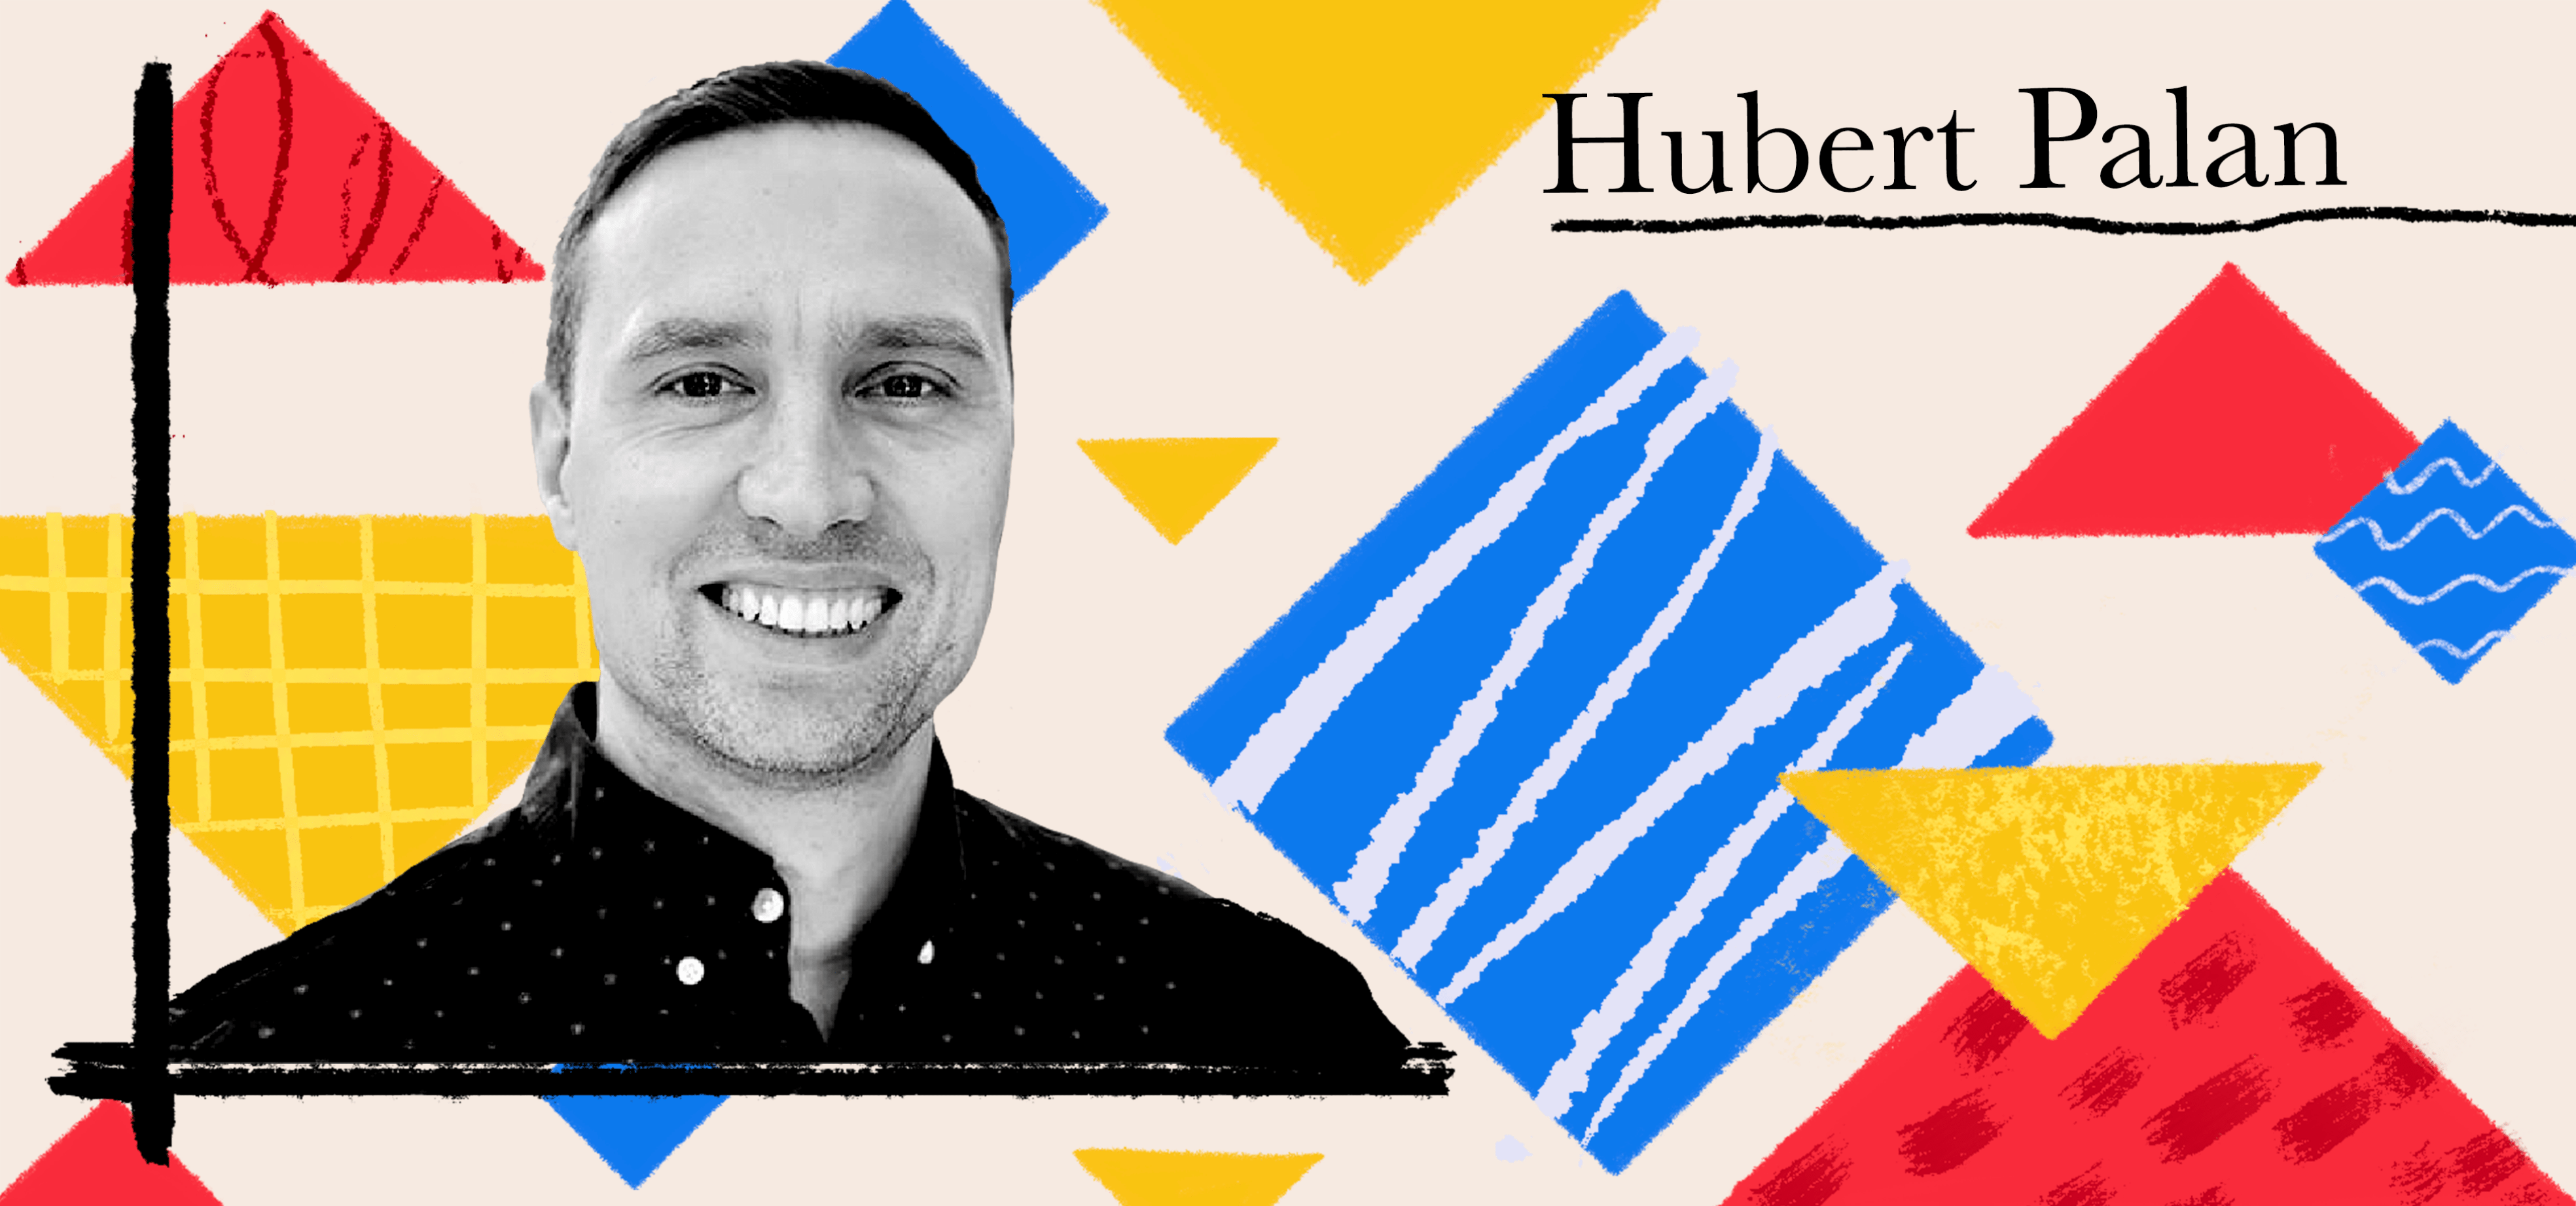 Productboard founder and CEO Hubert Palan on mastering product strategy